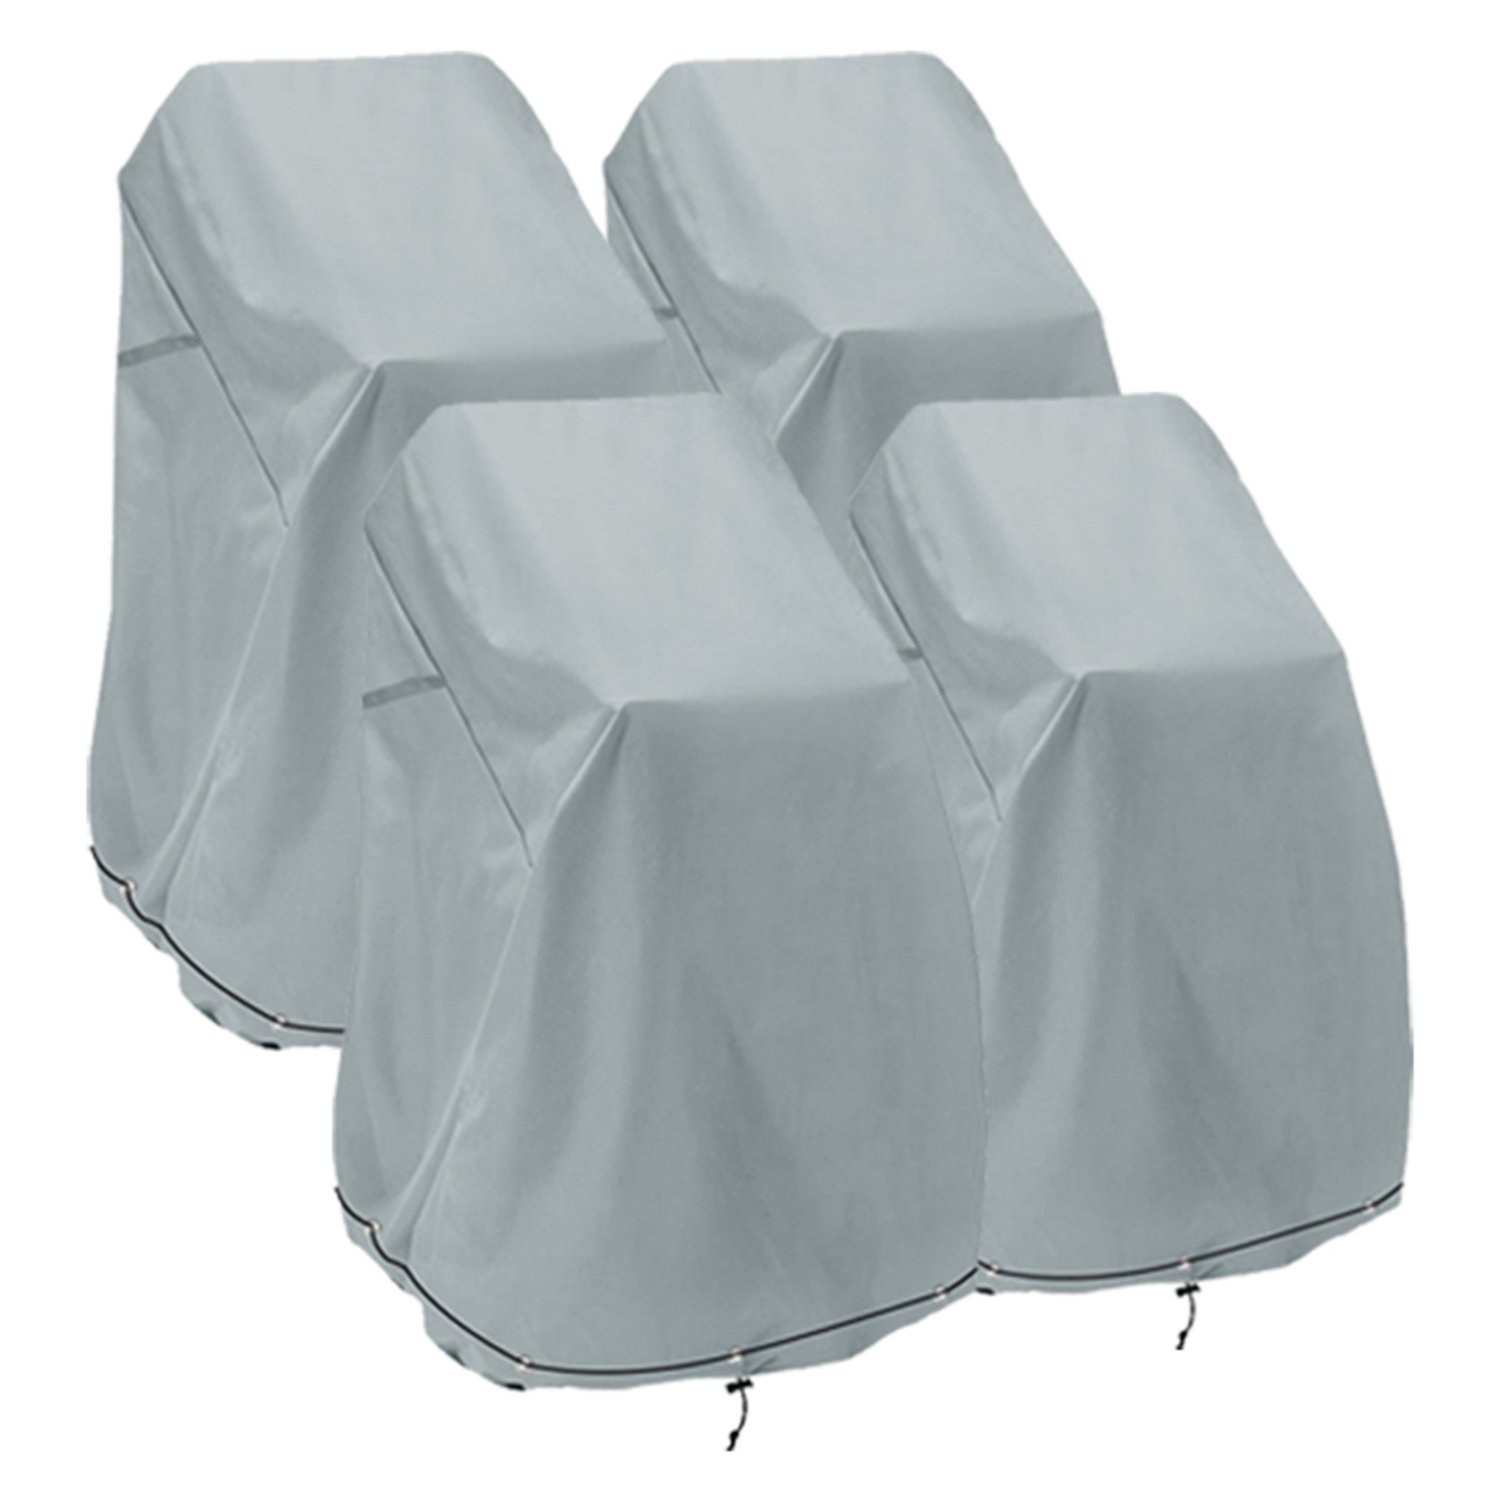 Amazon.com : Patio Chair Cover, Bar Chair/Stool Cover, Stackable ...